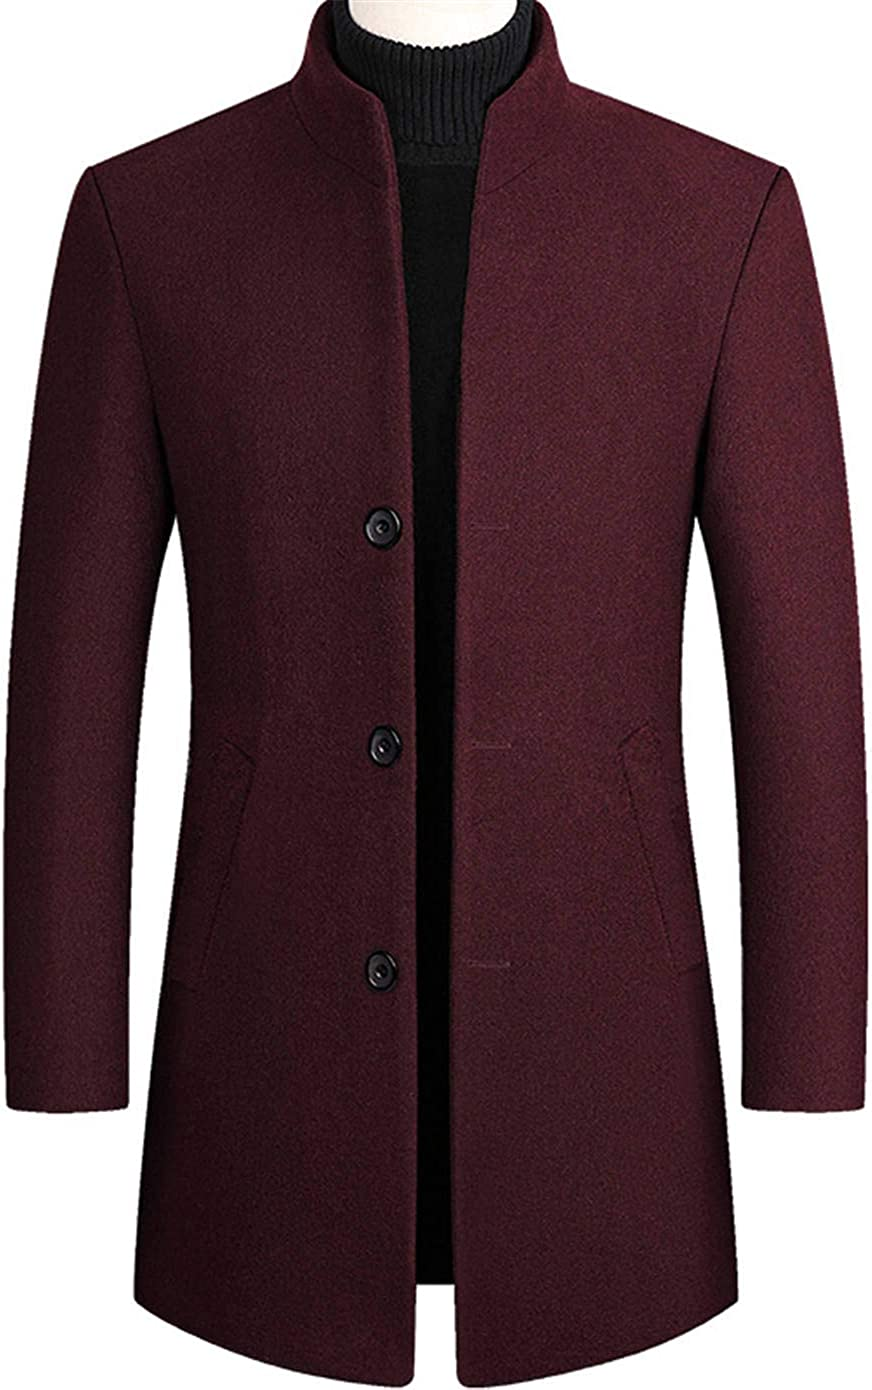 Soluo Mens Winter Warm Wool Coat Jacket with Removable Vest Casual Trench Coat Quilted Lined Overcoat (Red Wine,Large)